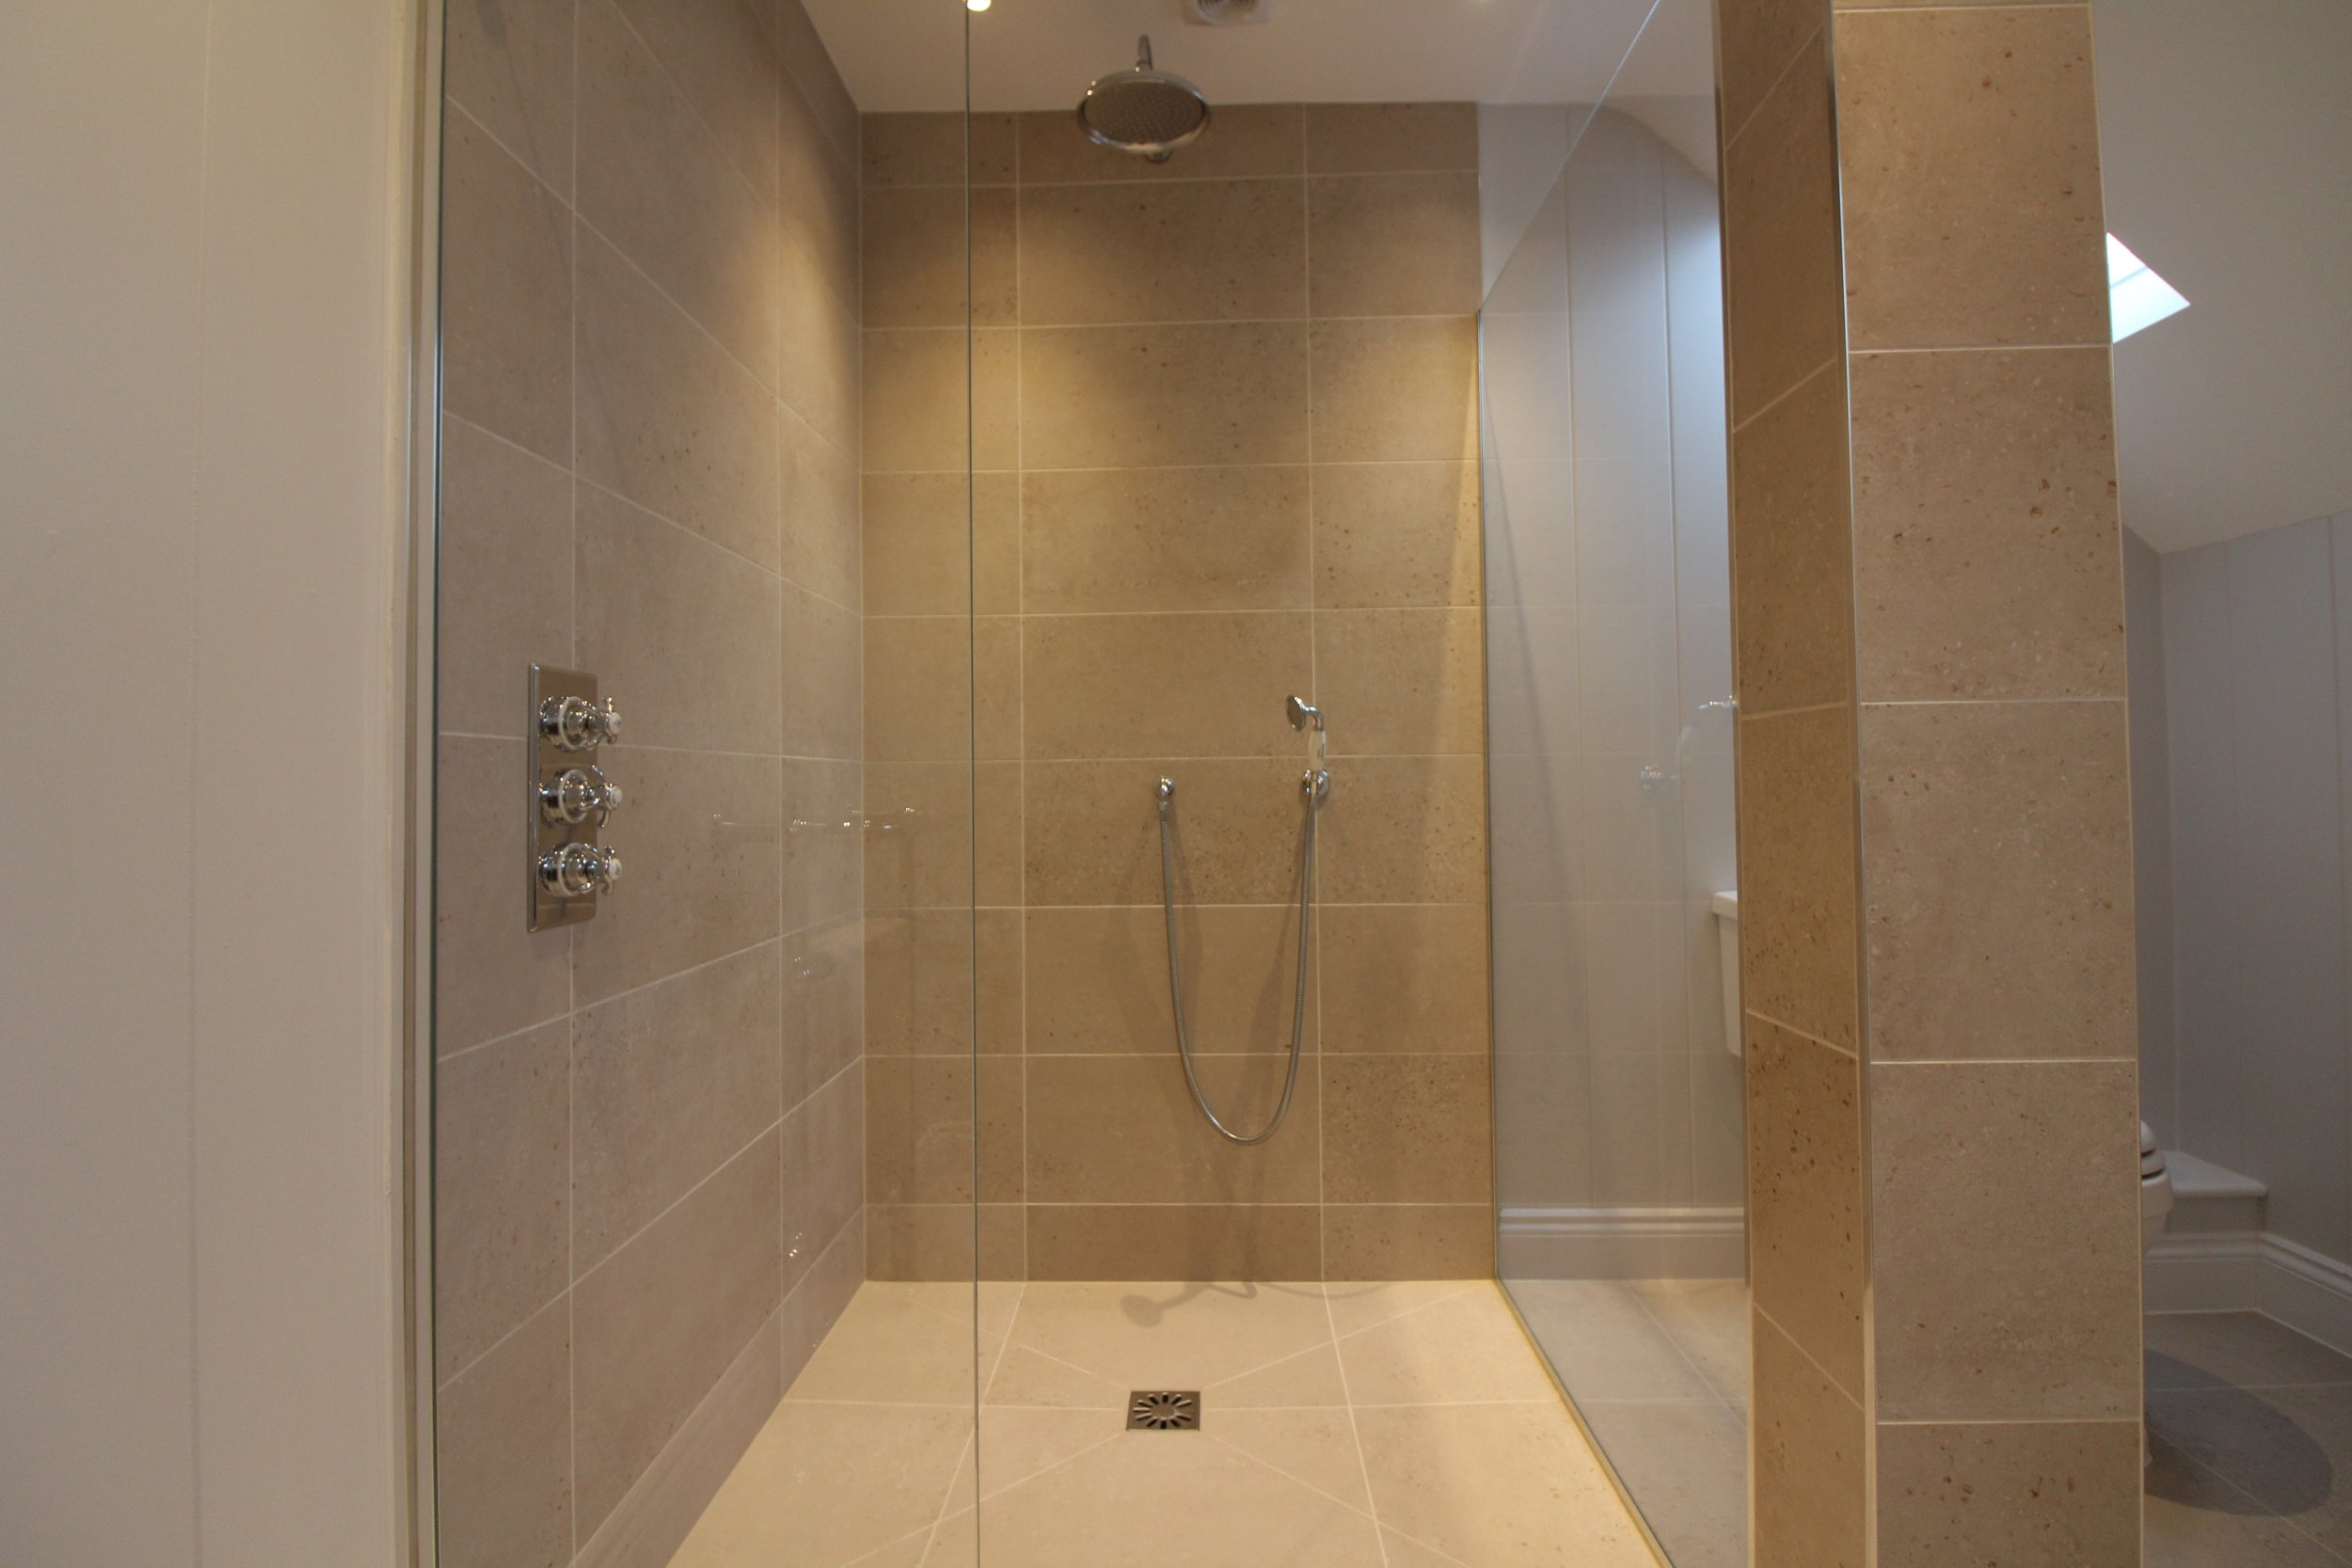 Porcelain tiles and Burlington fittings to give that classic wet room look.